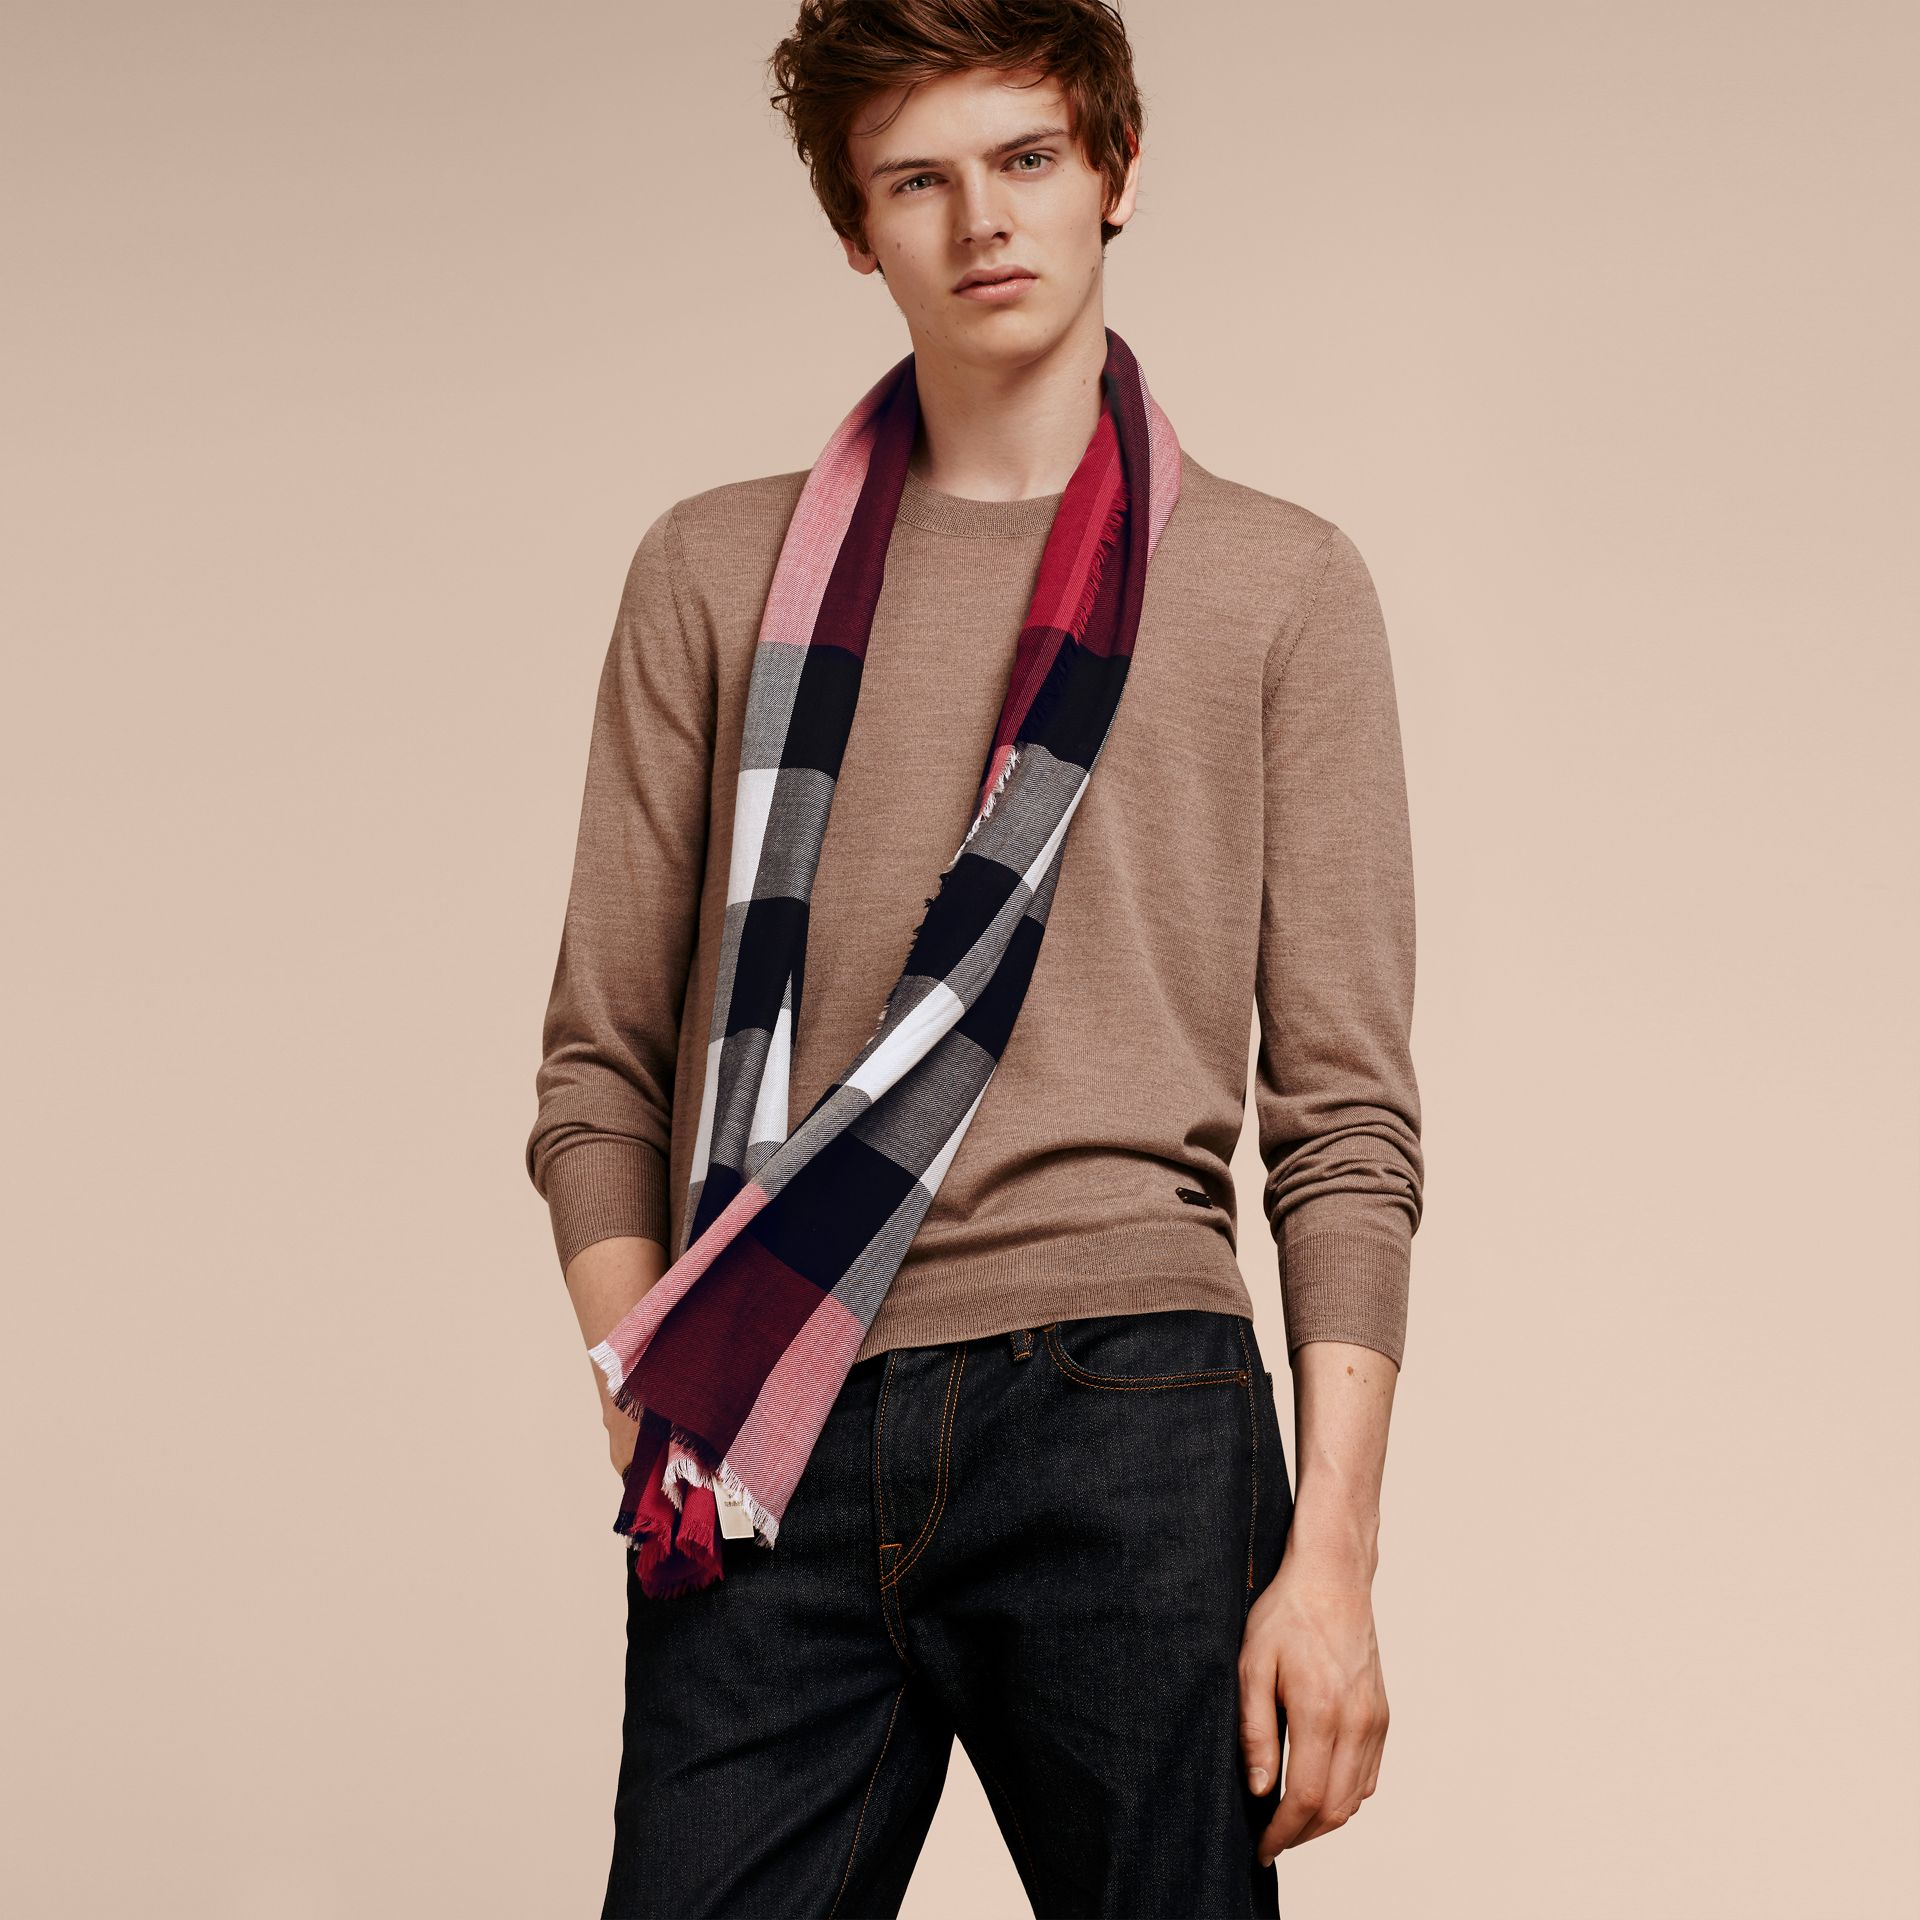 The Lightweight Cashmere Scarf in Check in Fuchsia Pink | Burberry Canada - gallery image 4